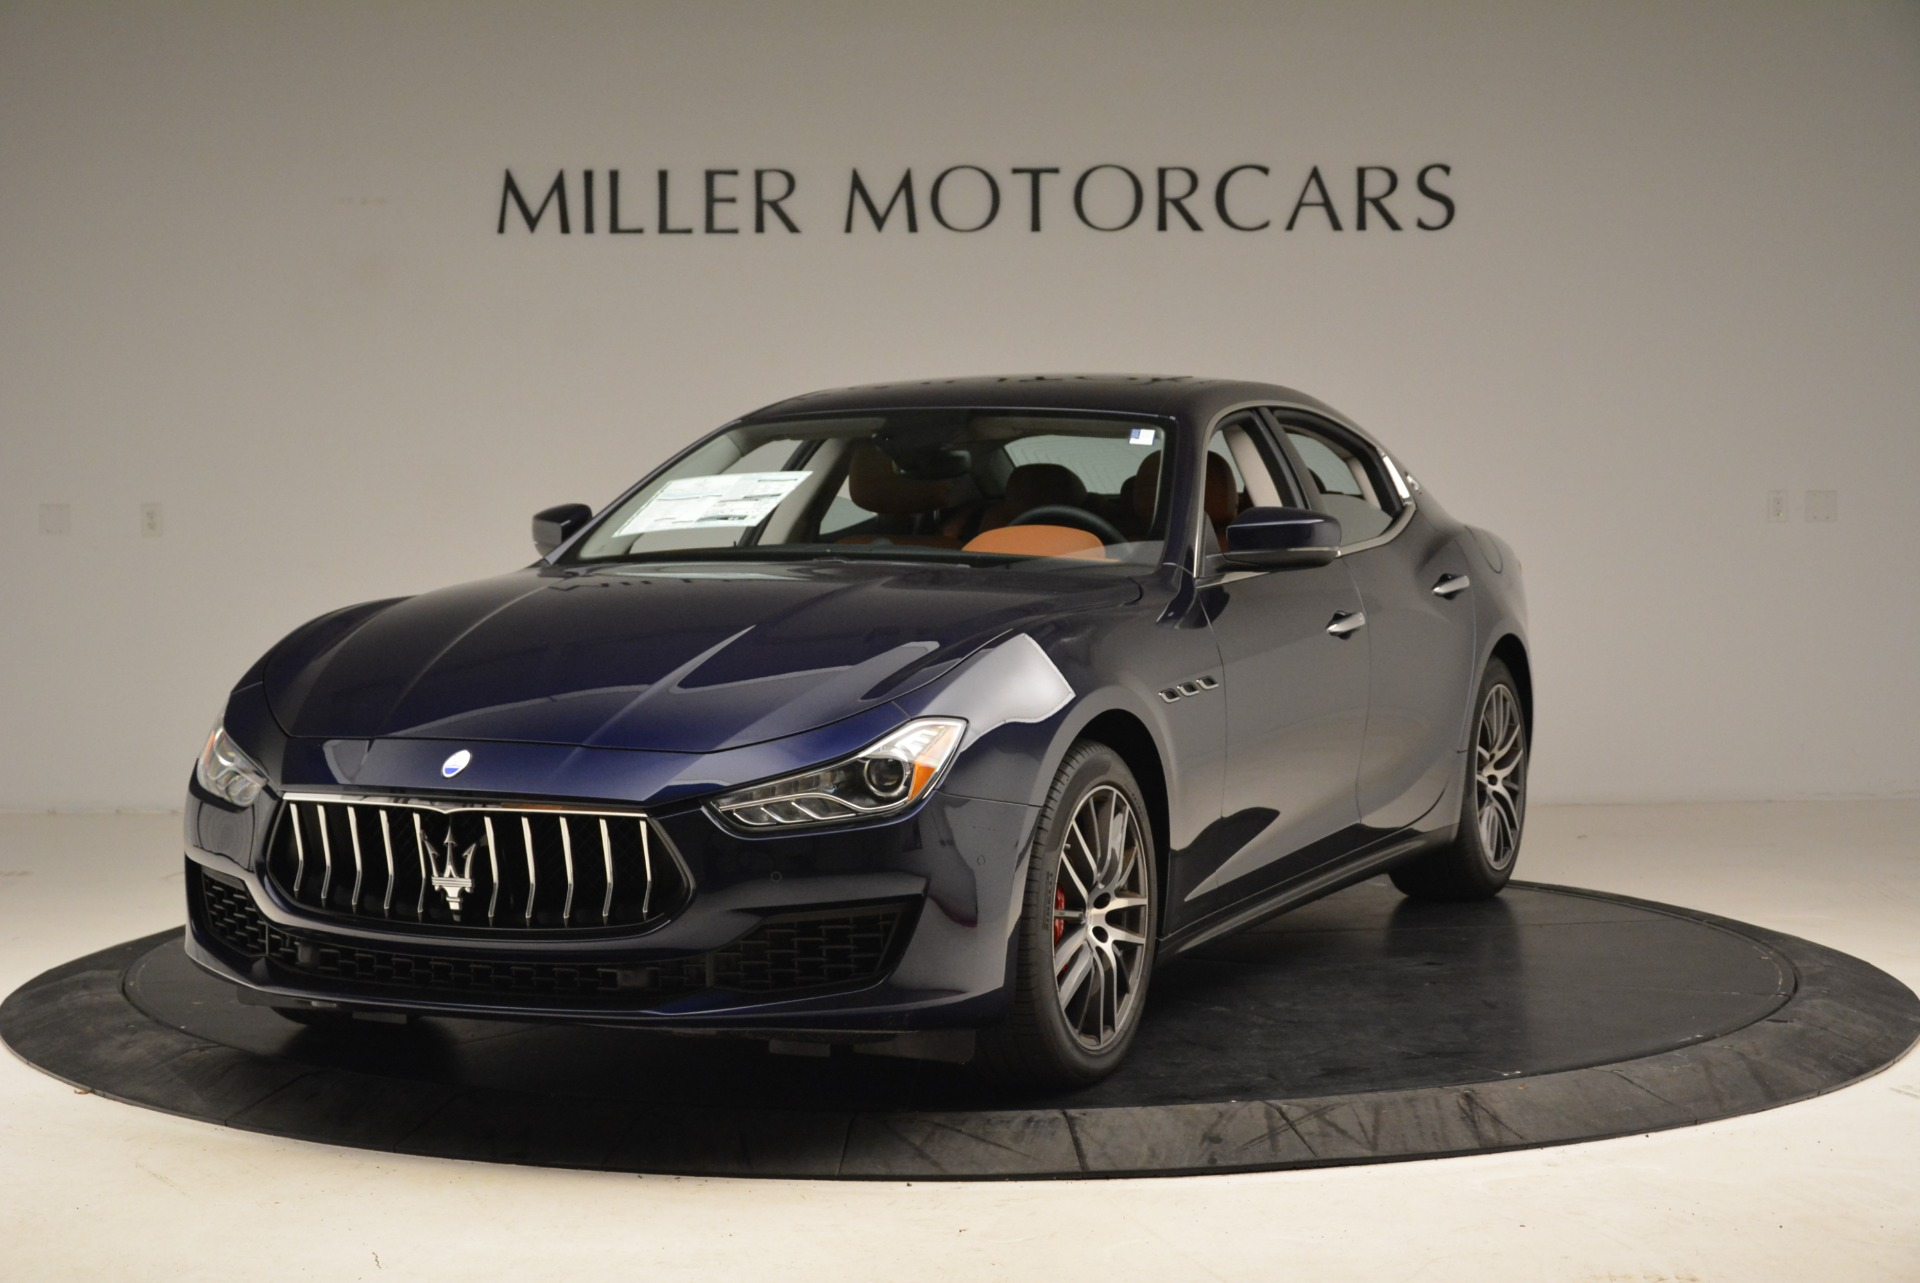 New 2018 Maserati Ghibli S Q4 for sale Sold at Alfa Romeo of Westport in Westport CT 06880 1